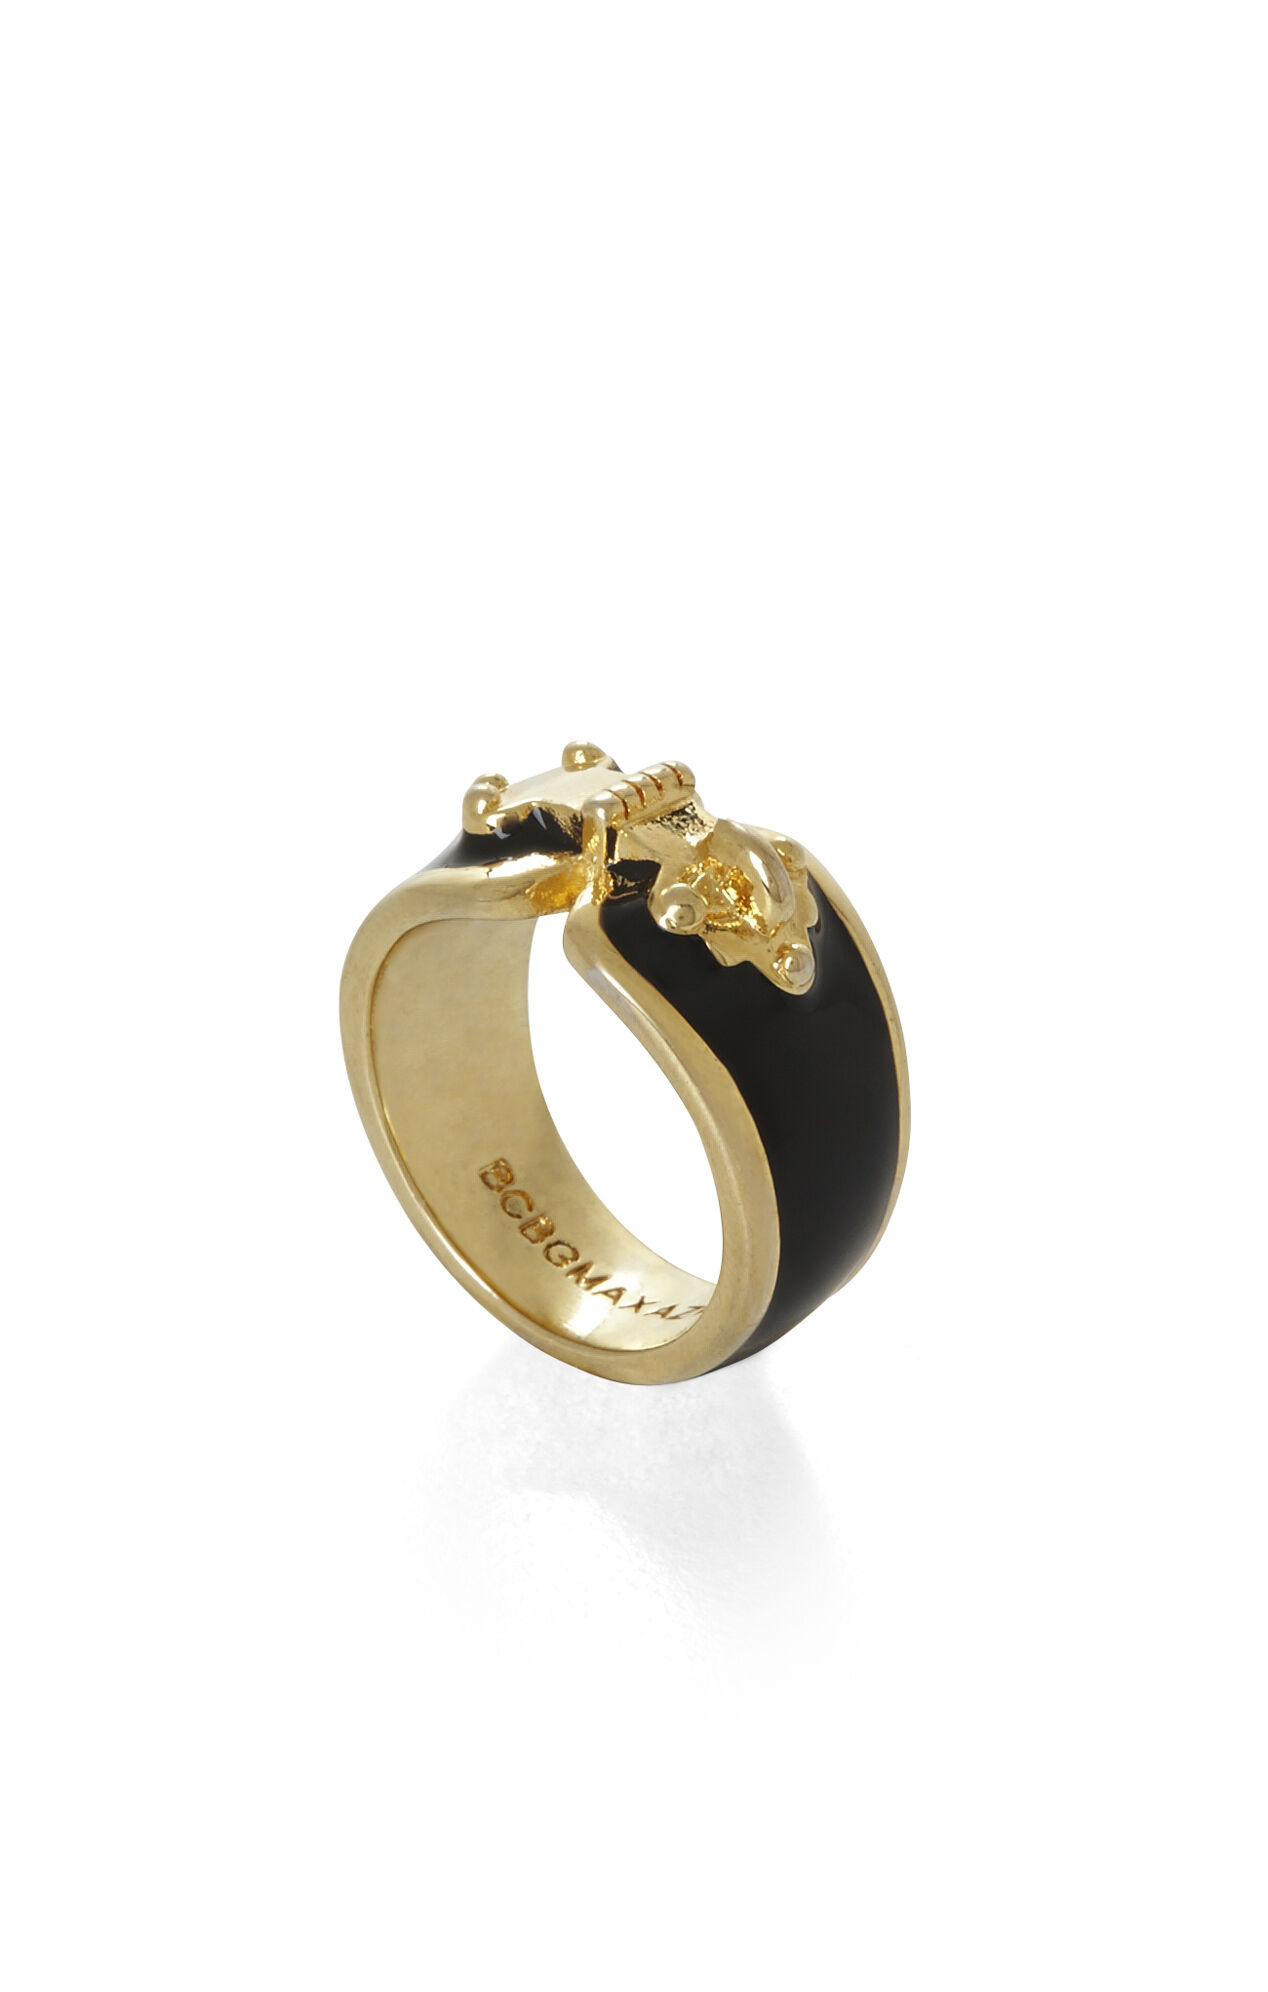 Enamel Hardware Ring